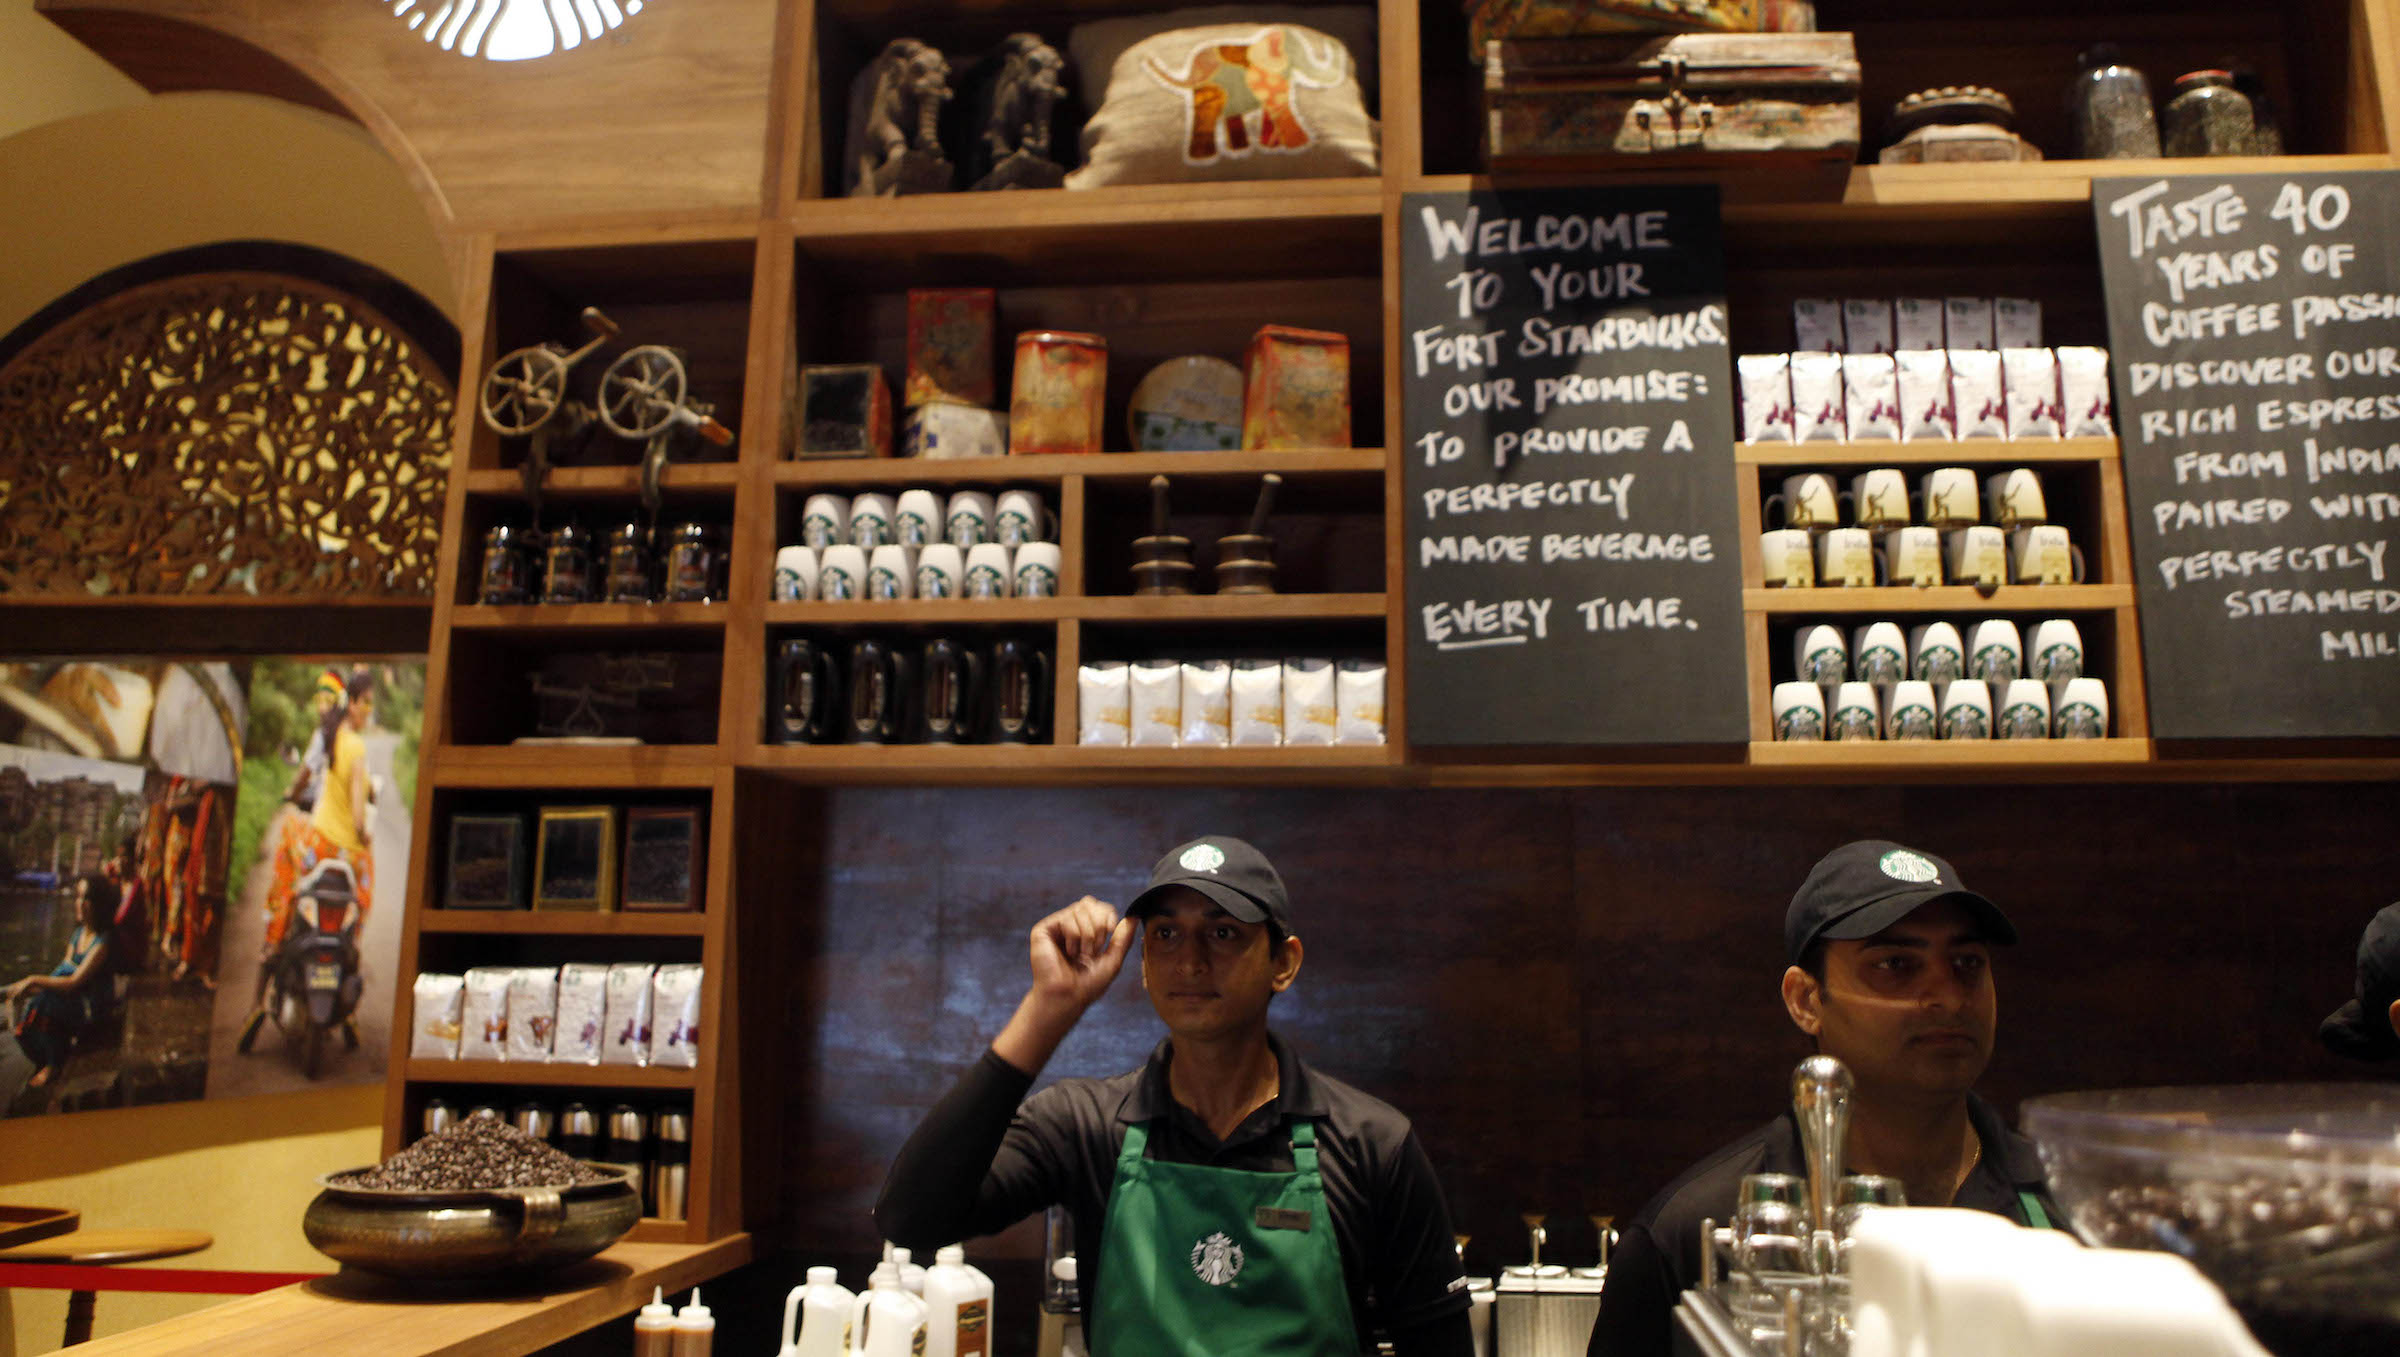 Starbucks opened its first outlet in Chennai only last month, almost two years after it entered India.